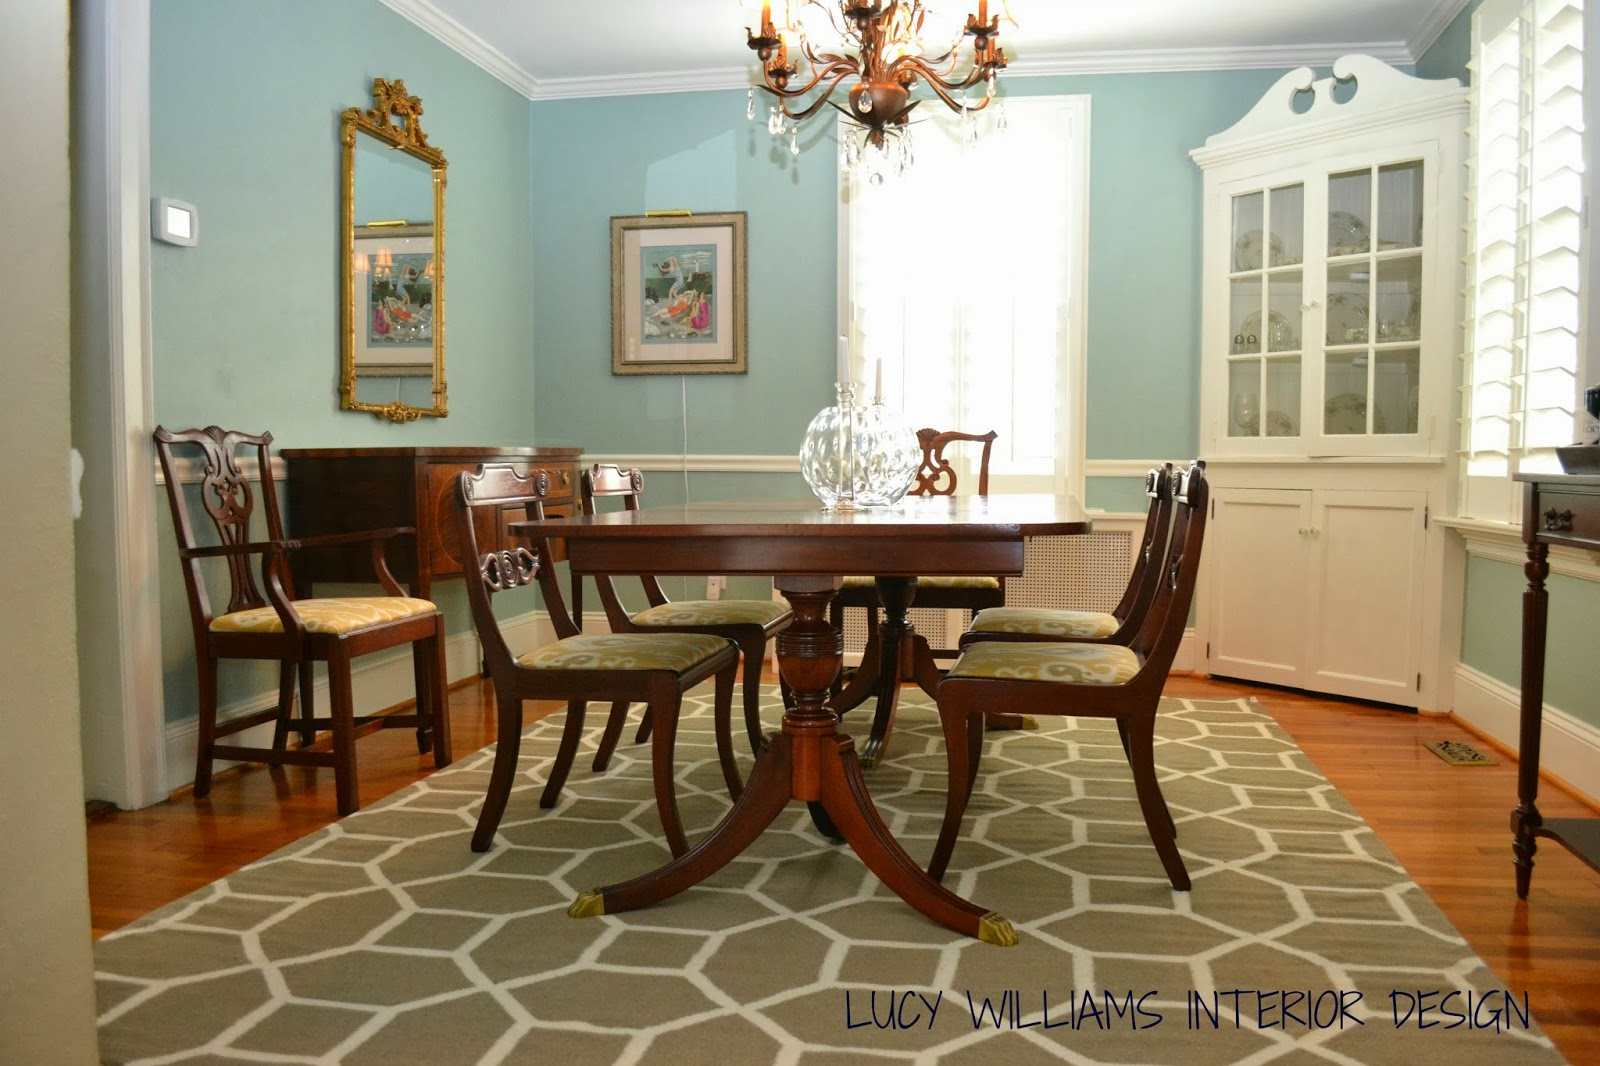 Dining Room Ideas Blog Lucy Williams Interior Design Blog Before And After